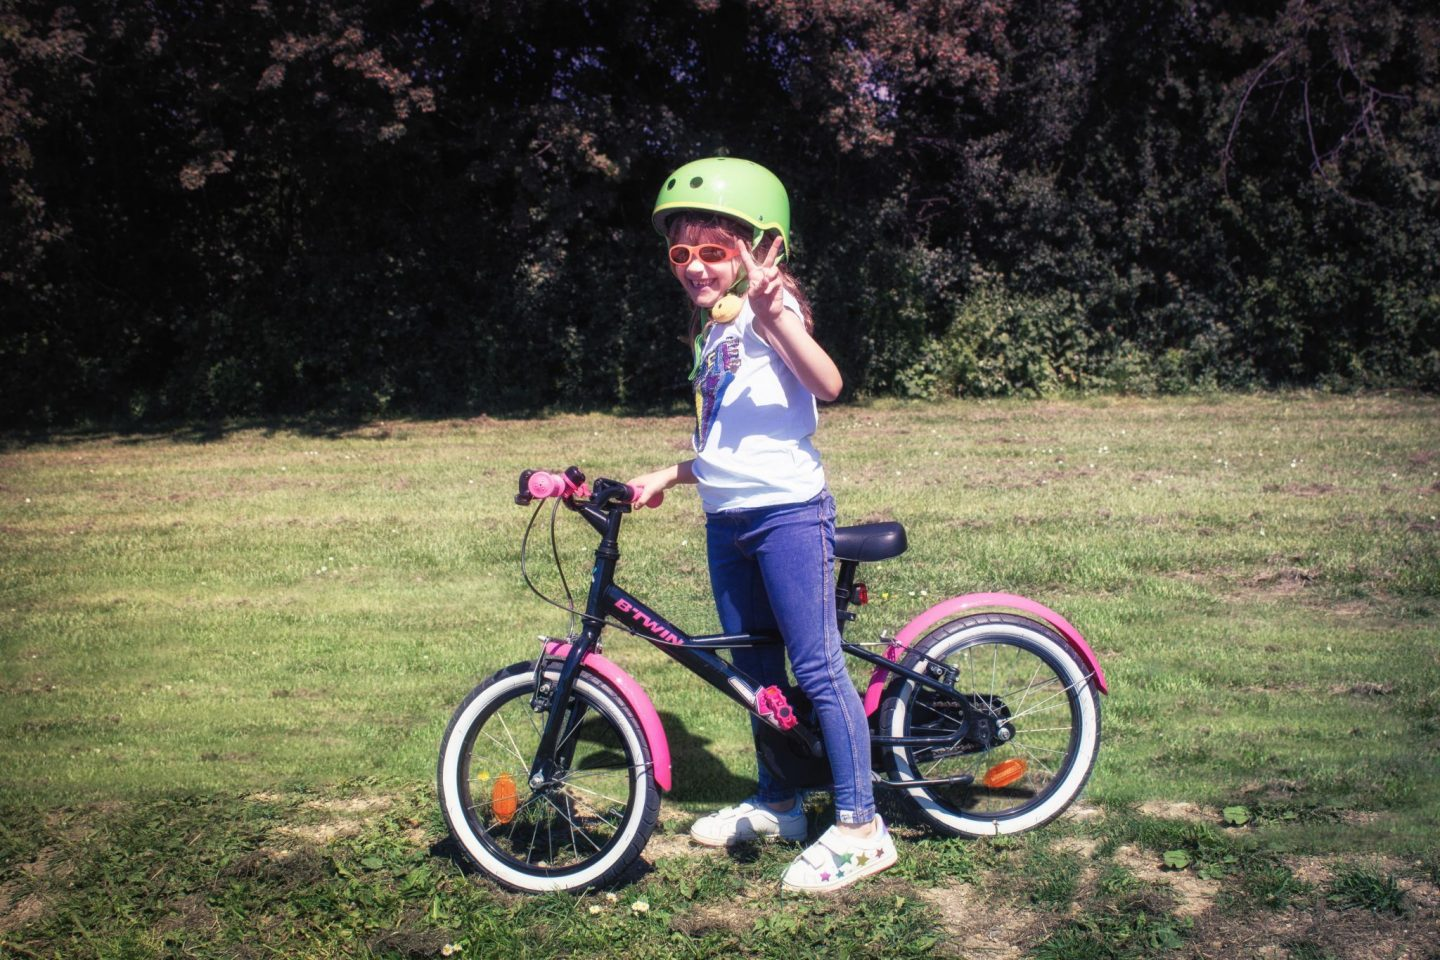 cycling without stabilisers, cycling, stabilisers, dadbloguk, dad blog, active children, outdoor activities